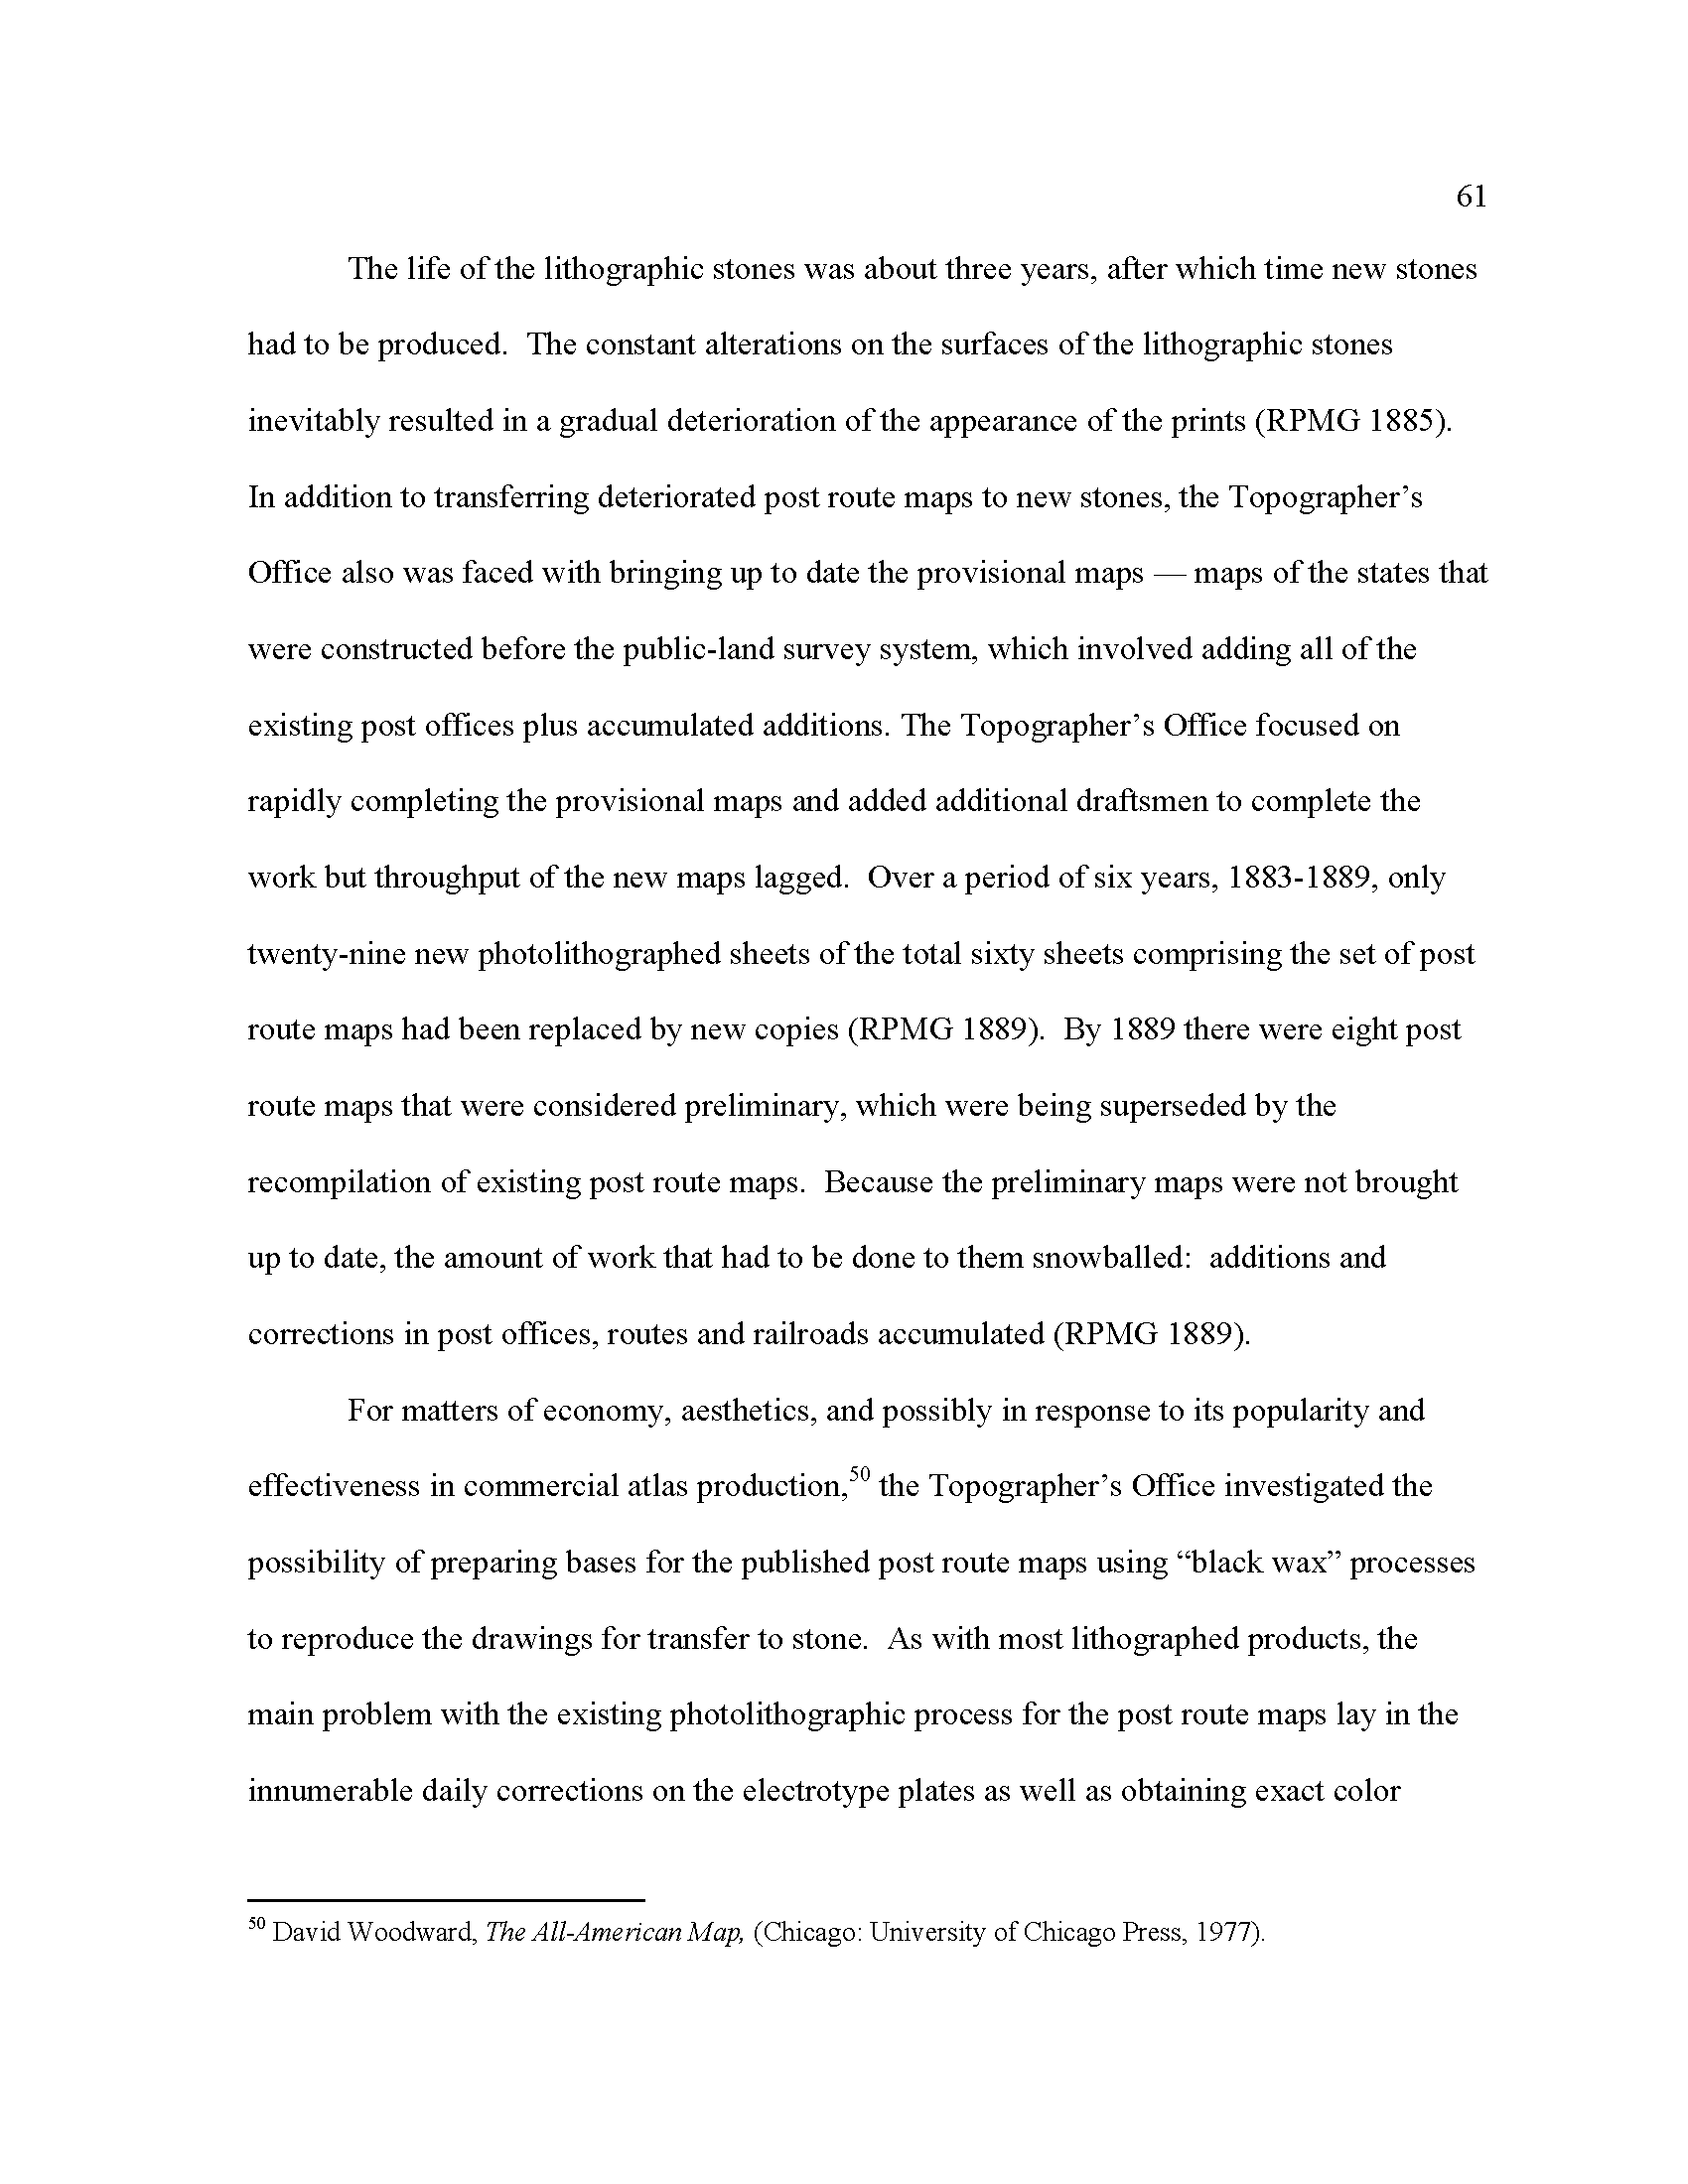 Thesis Final_Page_065.png